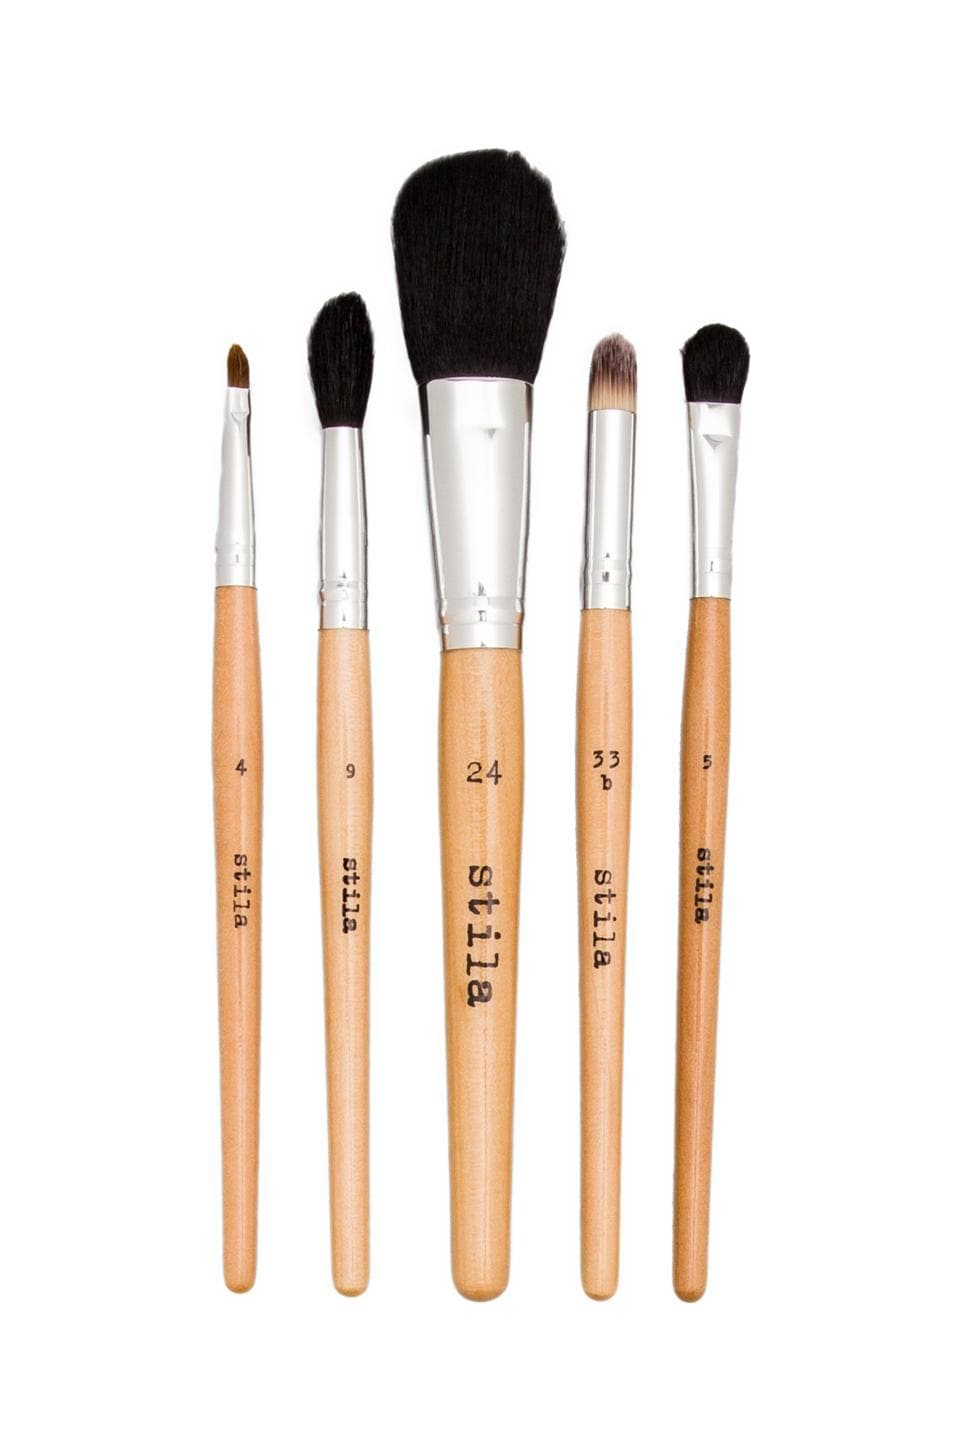 Stila Tools of the Trade Brush Set